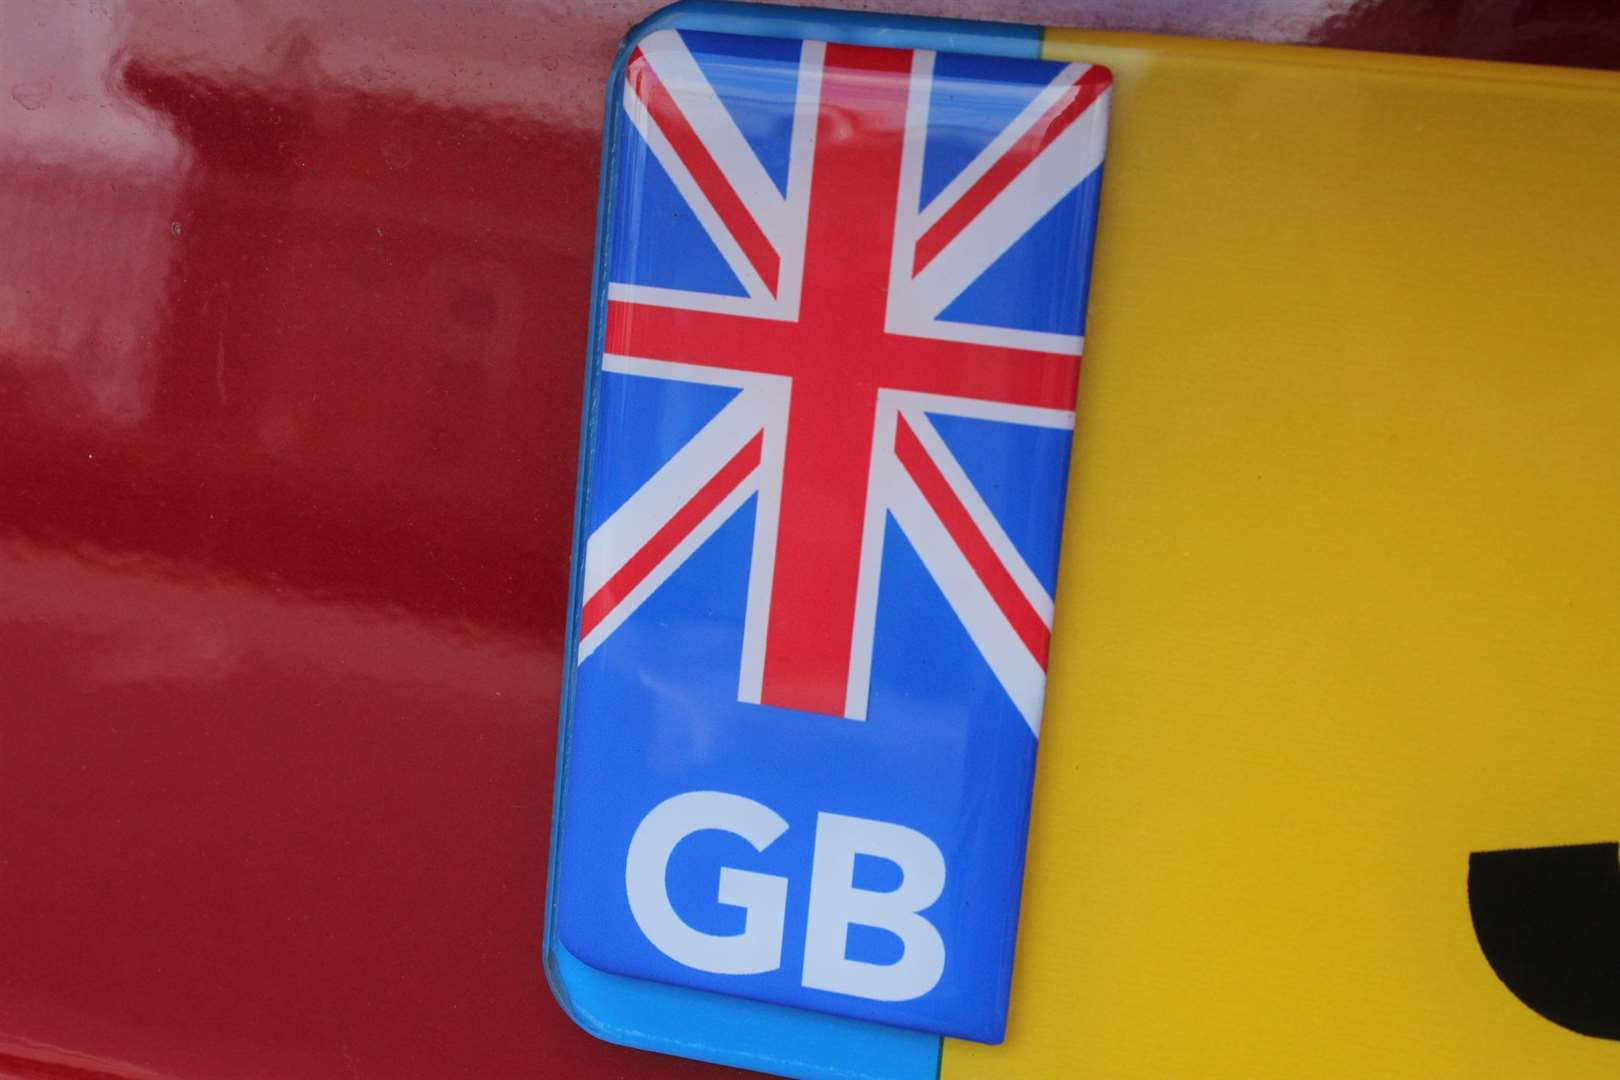 The old GB style number plate is also being replaced with a UK version